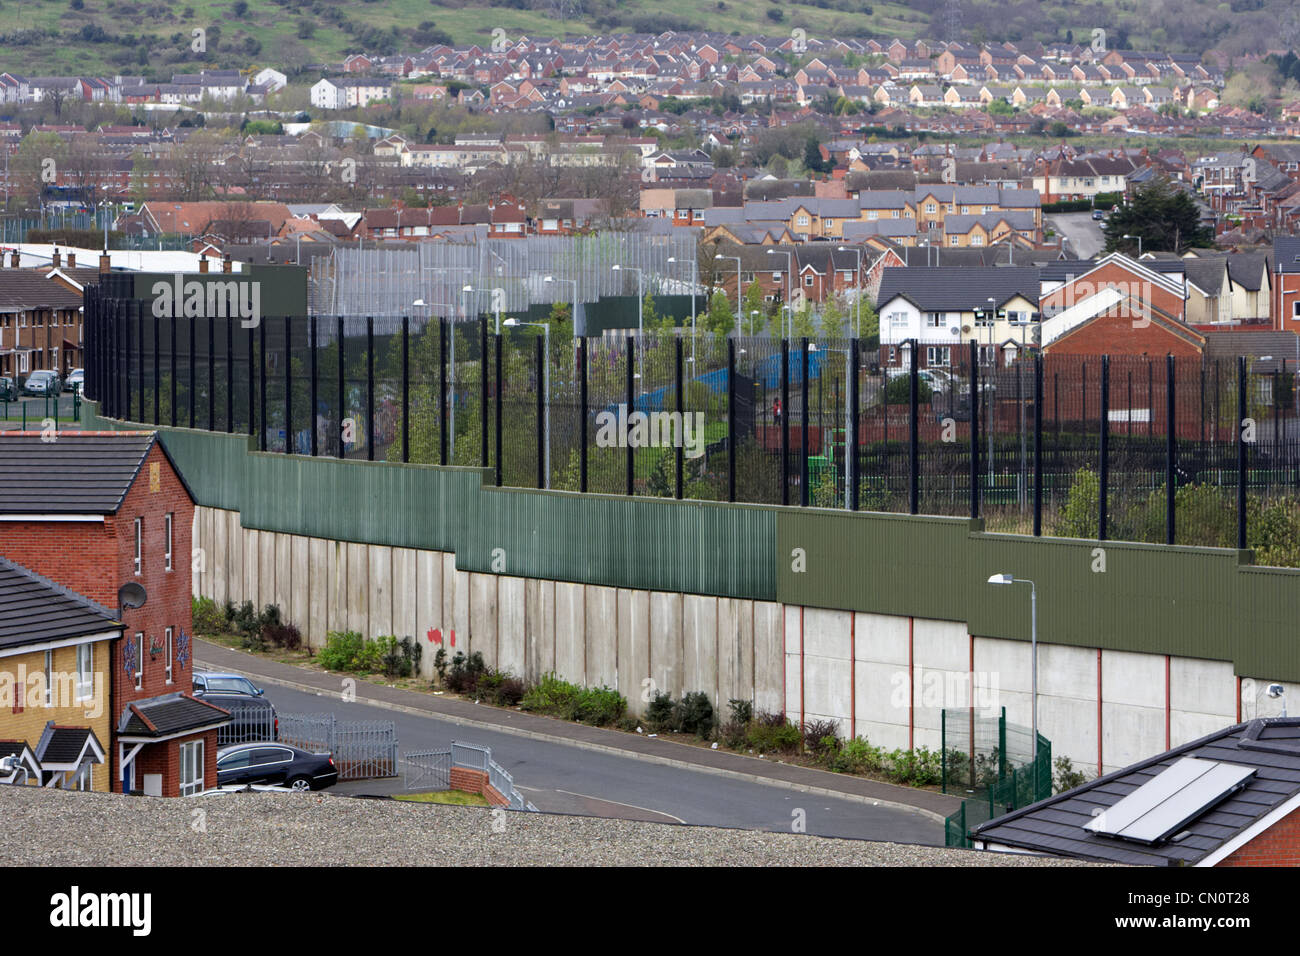 the peace line wall separating the lower falls and shankill areas of west Belfast Northern Ireland UK - Stock Image